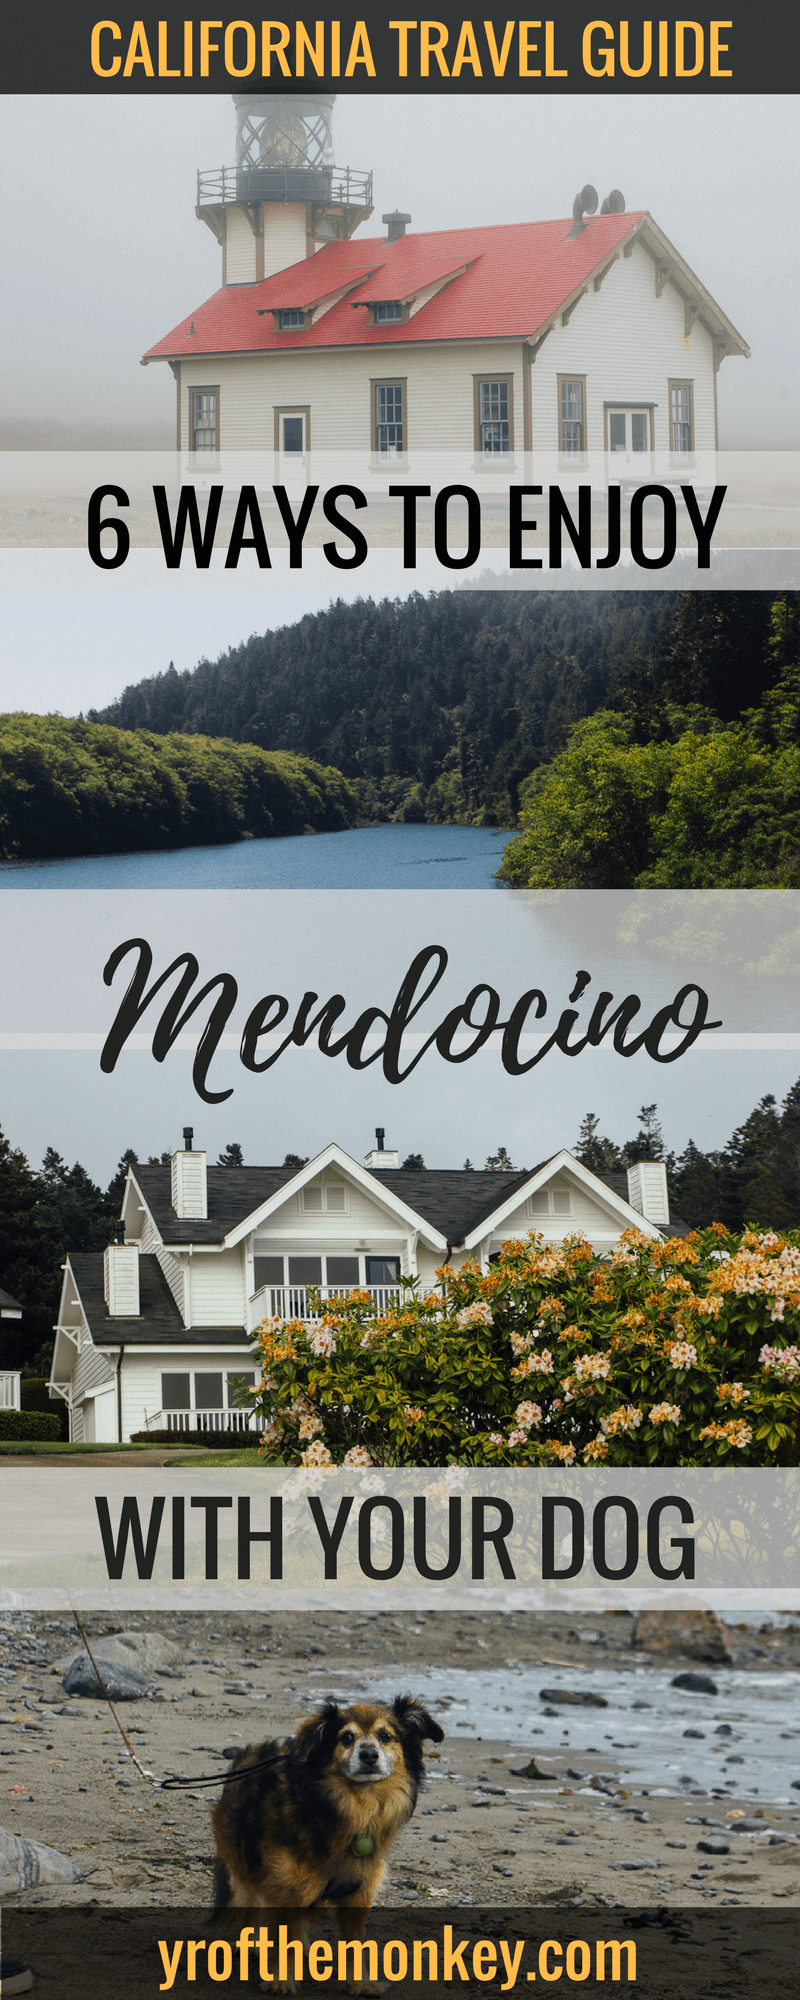 Mendocino With Your Dog A Guide To The Ultimate Pet Friendly Vacation